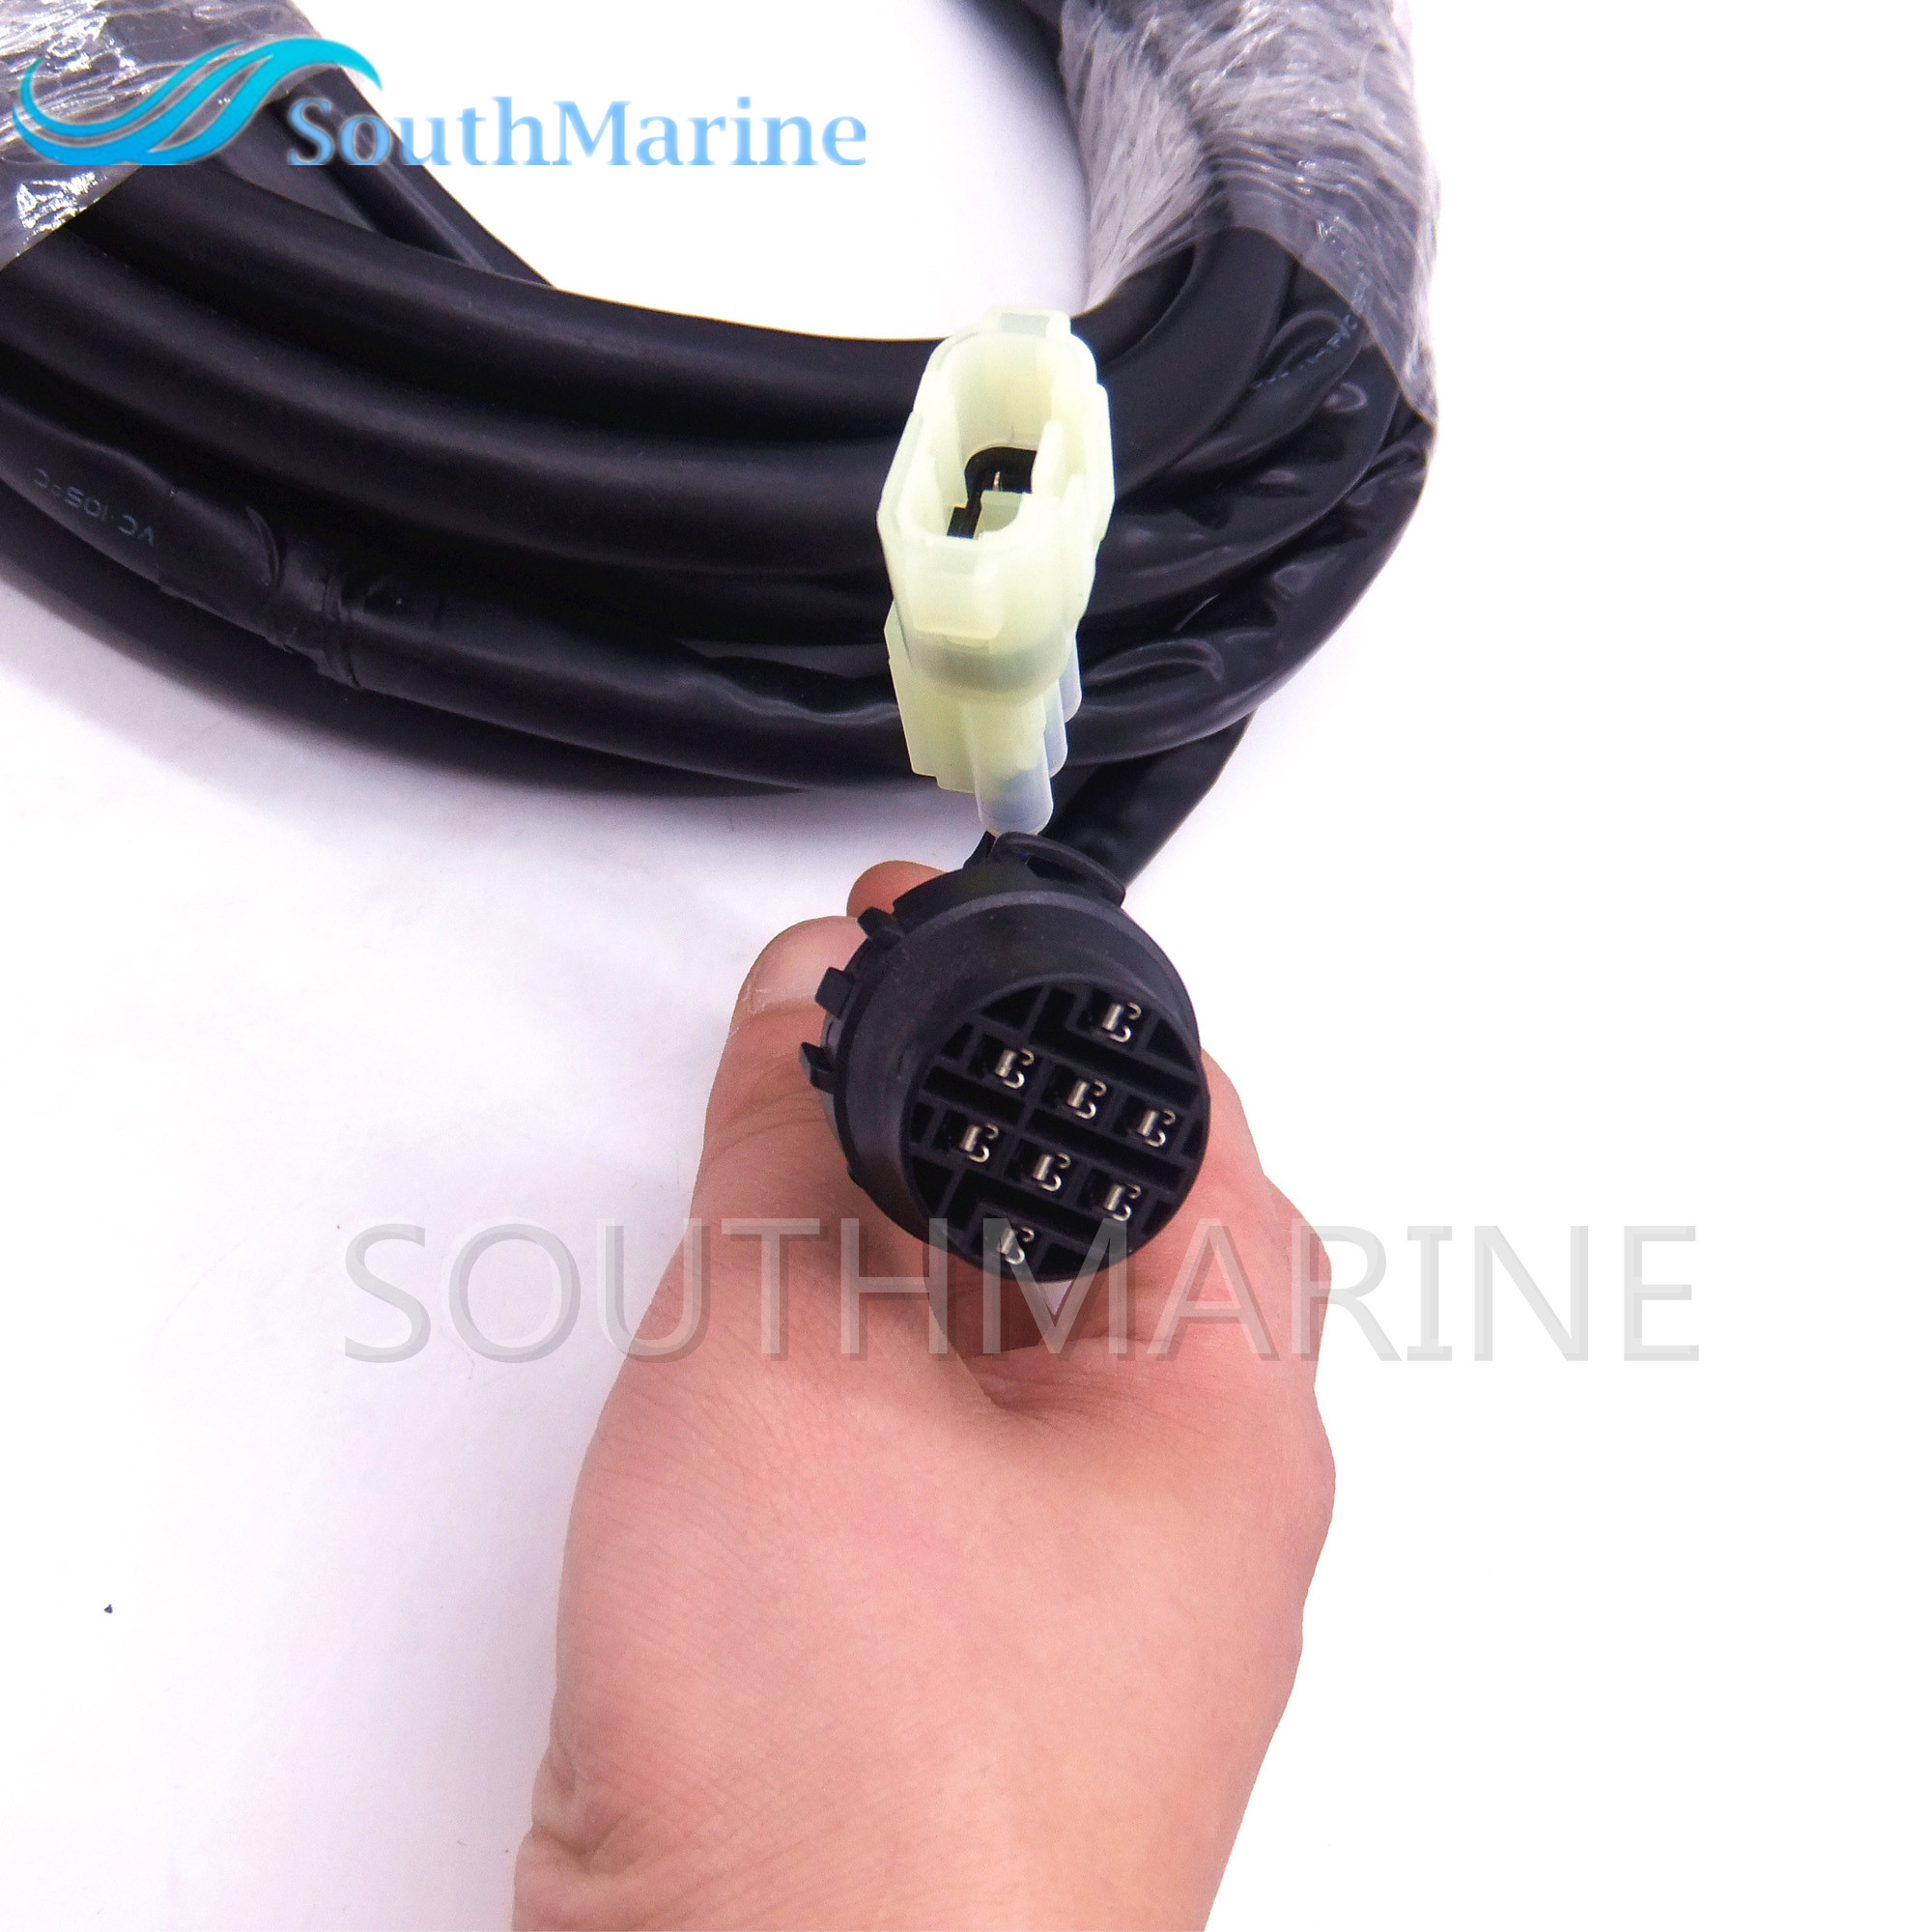 small resolution of 36620 93j02 22 6ft main wiring harness for suzuki outboard motor remote control box with ptt 8p 6 9m